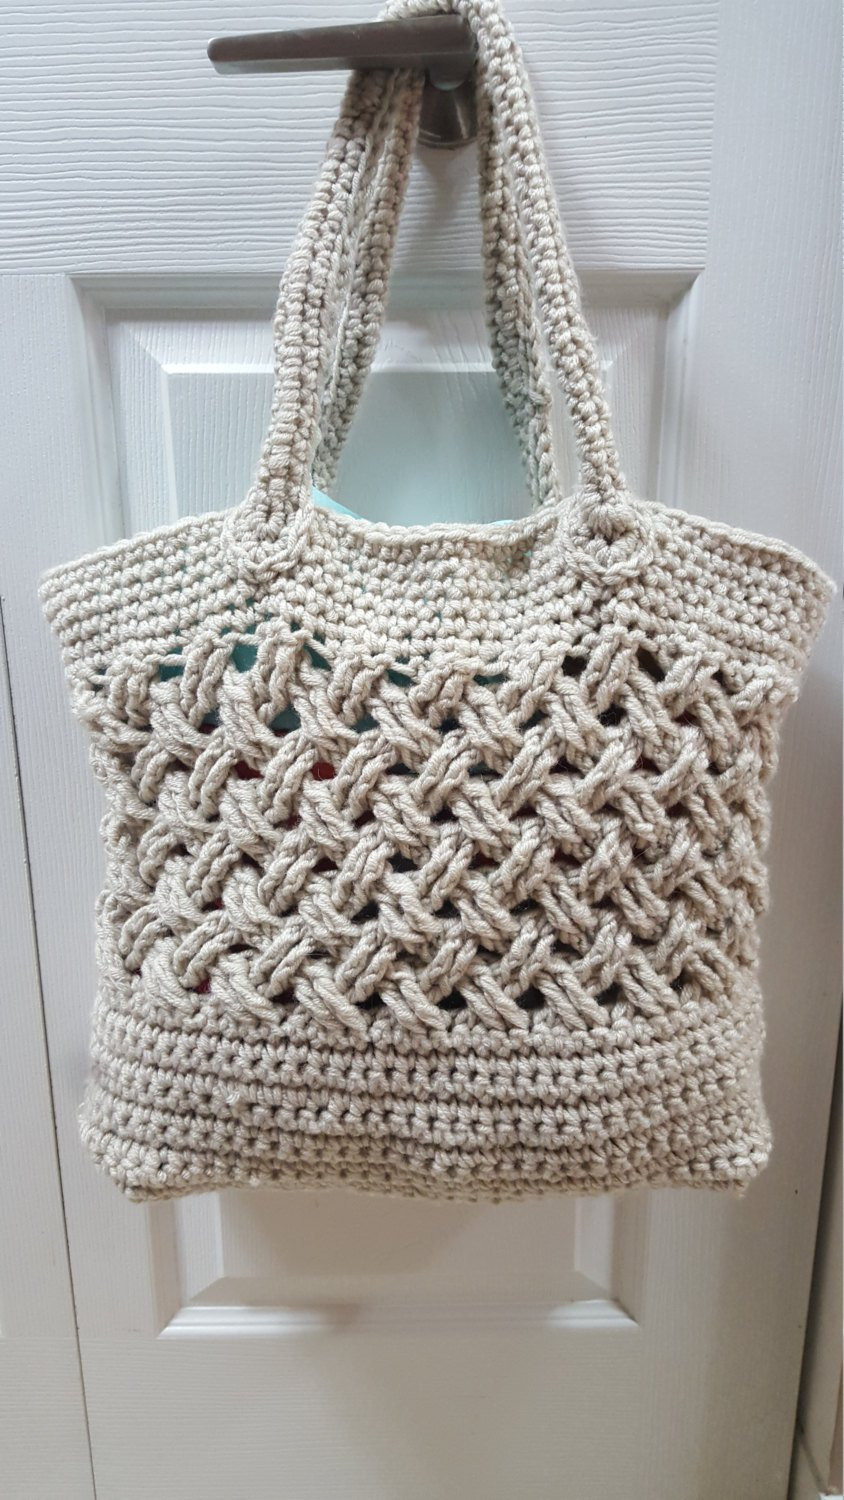 Crochet Backpack Pattern New Crochet Pattern Crochet Bag Crochet Bag Pattern Crochet Of Perfect 44 Pictures Crochet Backpack Pattern